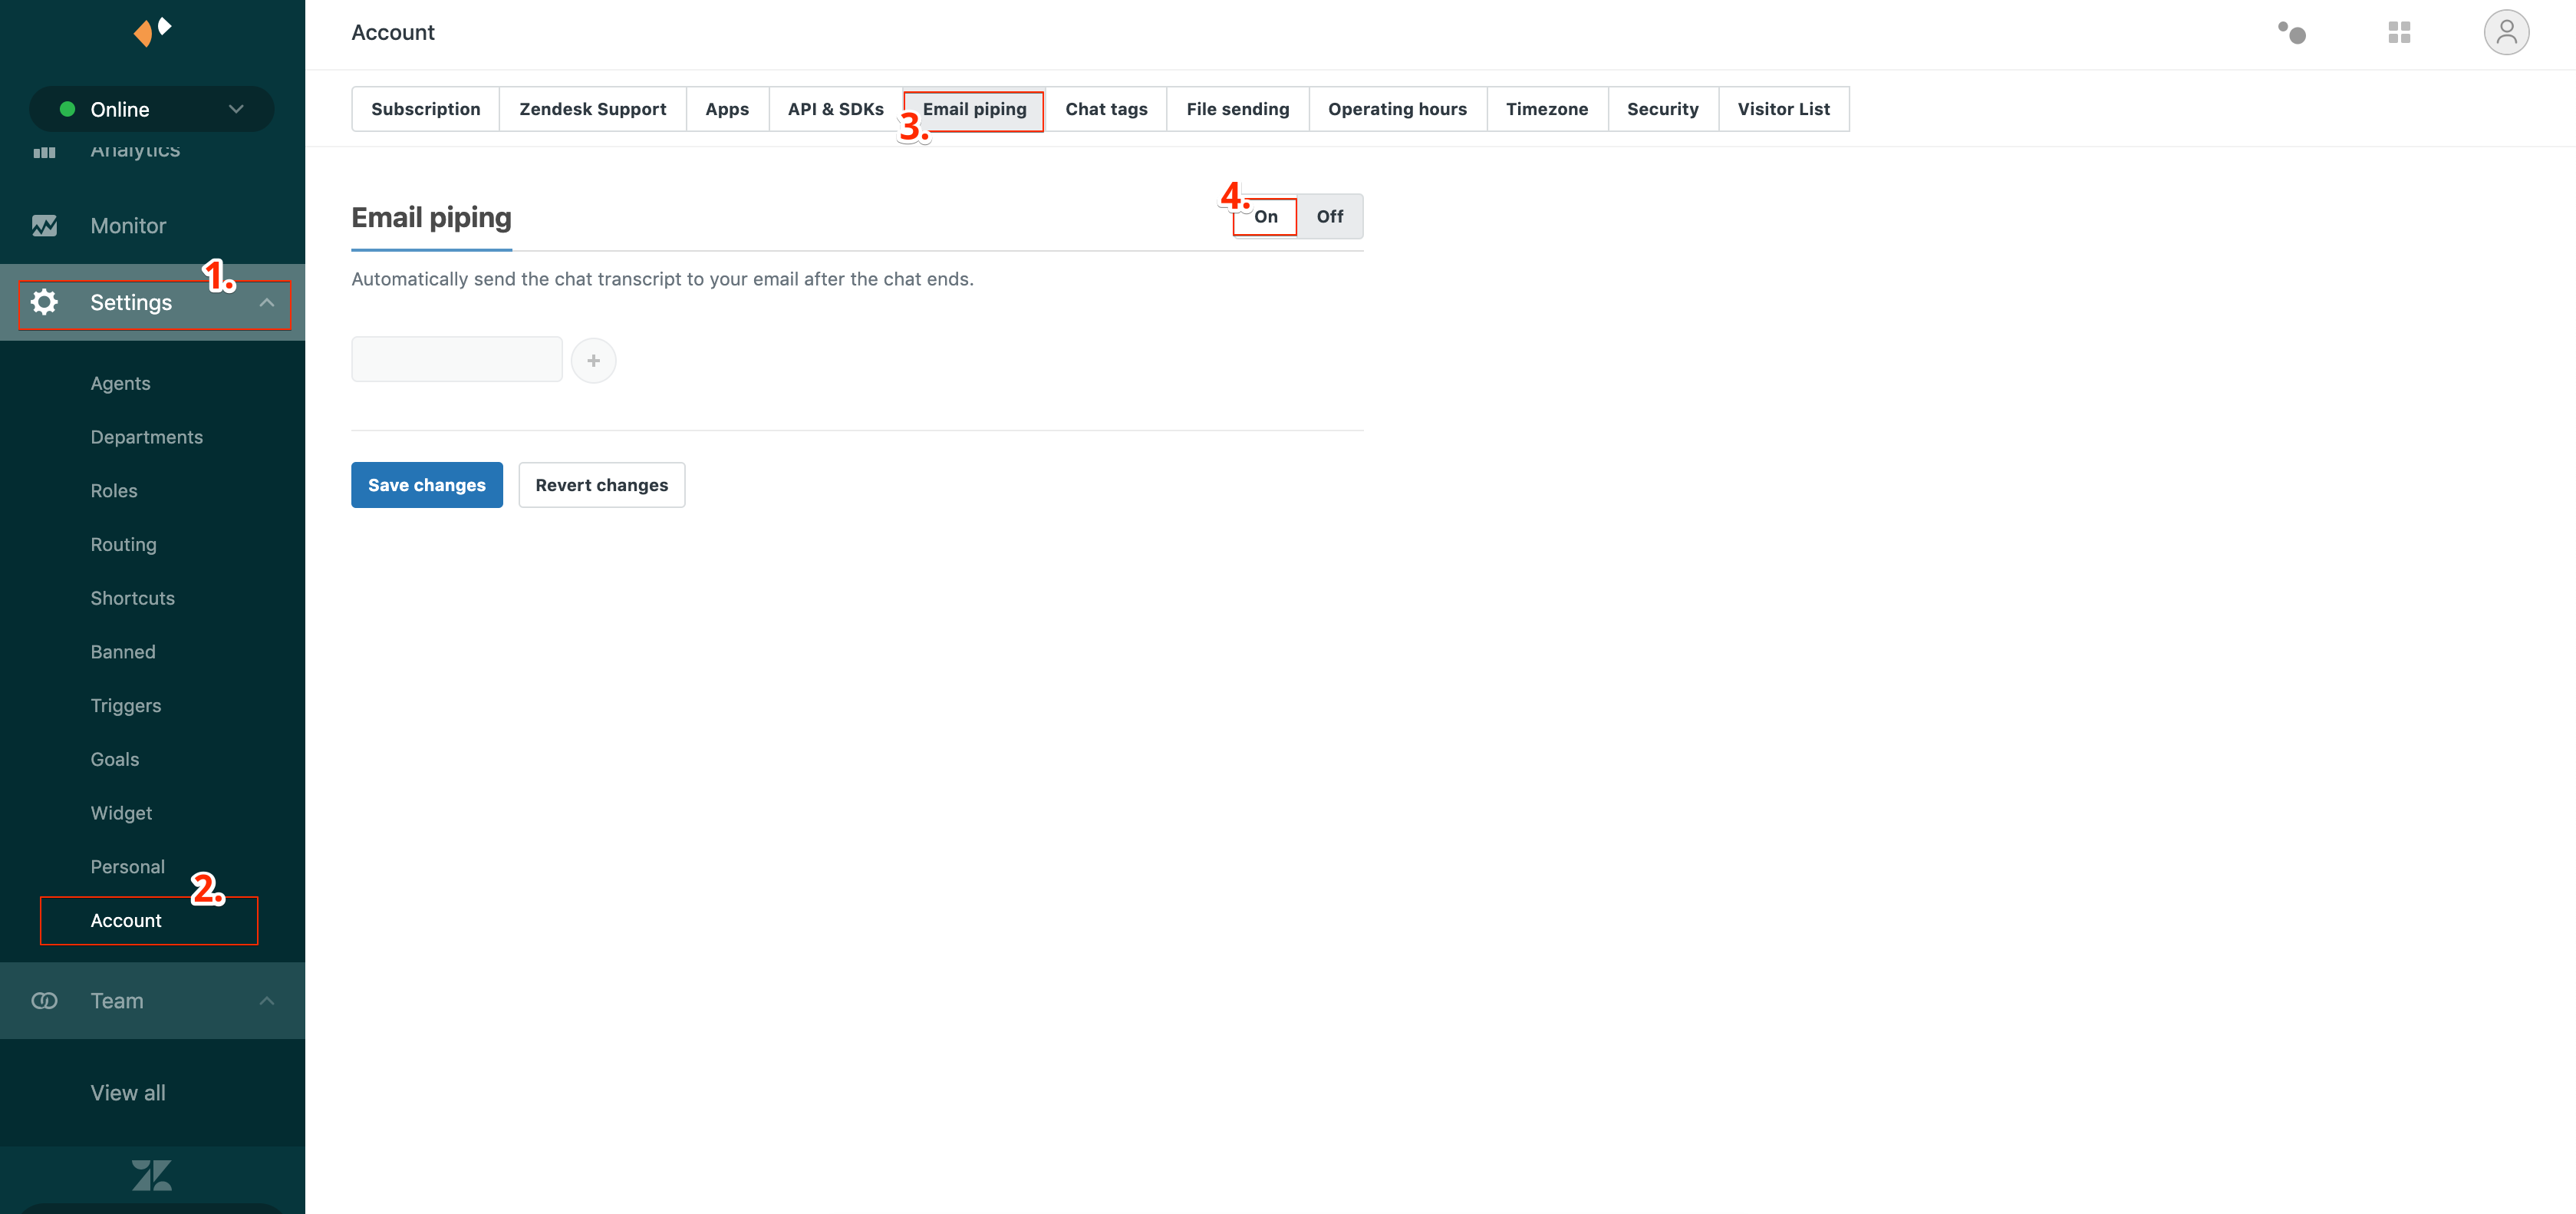 Zendesk settings - email piping